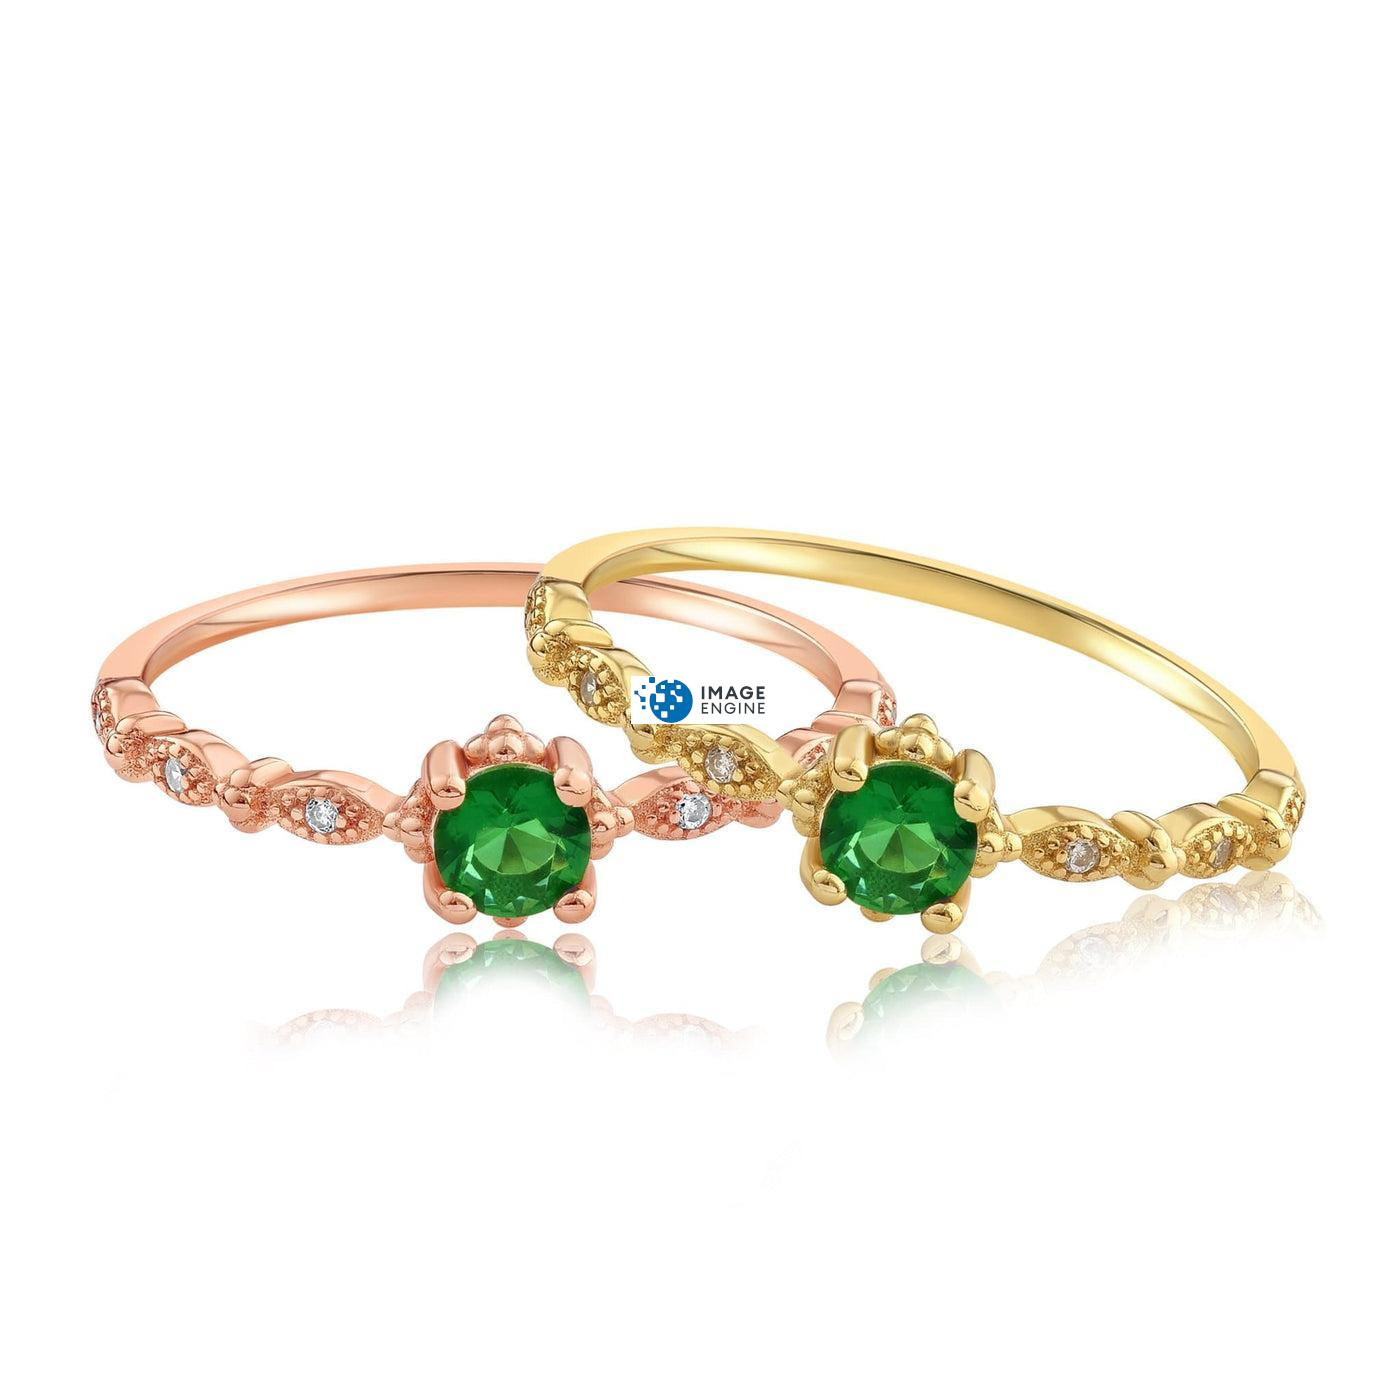 Garen Ring Green Gemstone - Front View Side by Side - 18K Rose Gold Vermeil and 18K Yellow Gold Vermeil